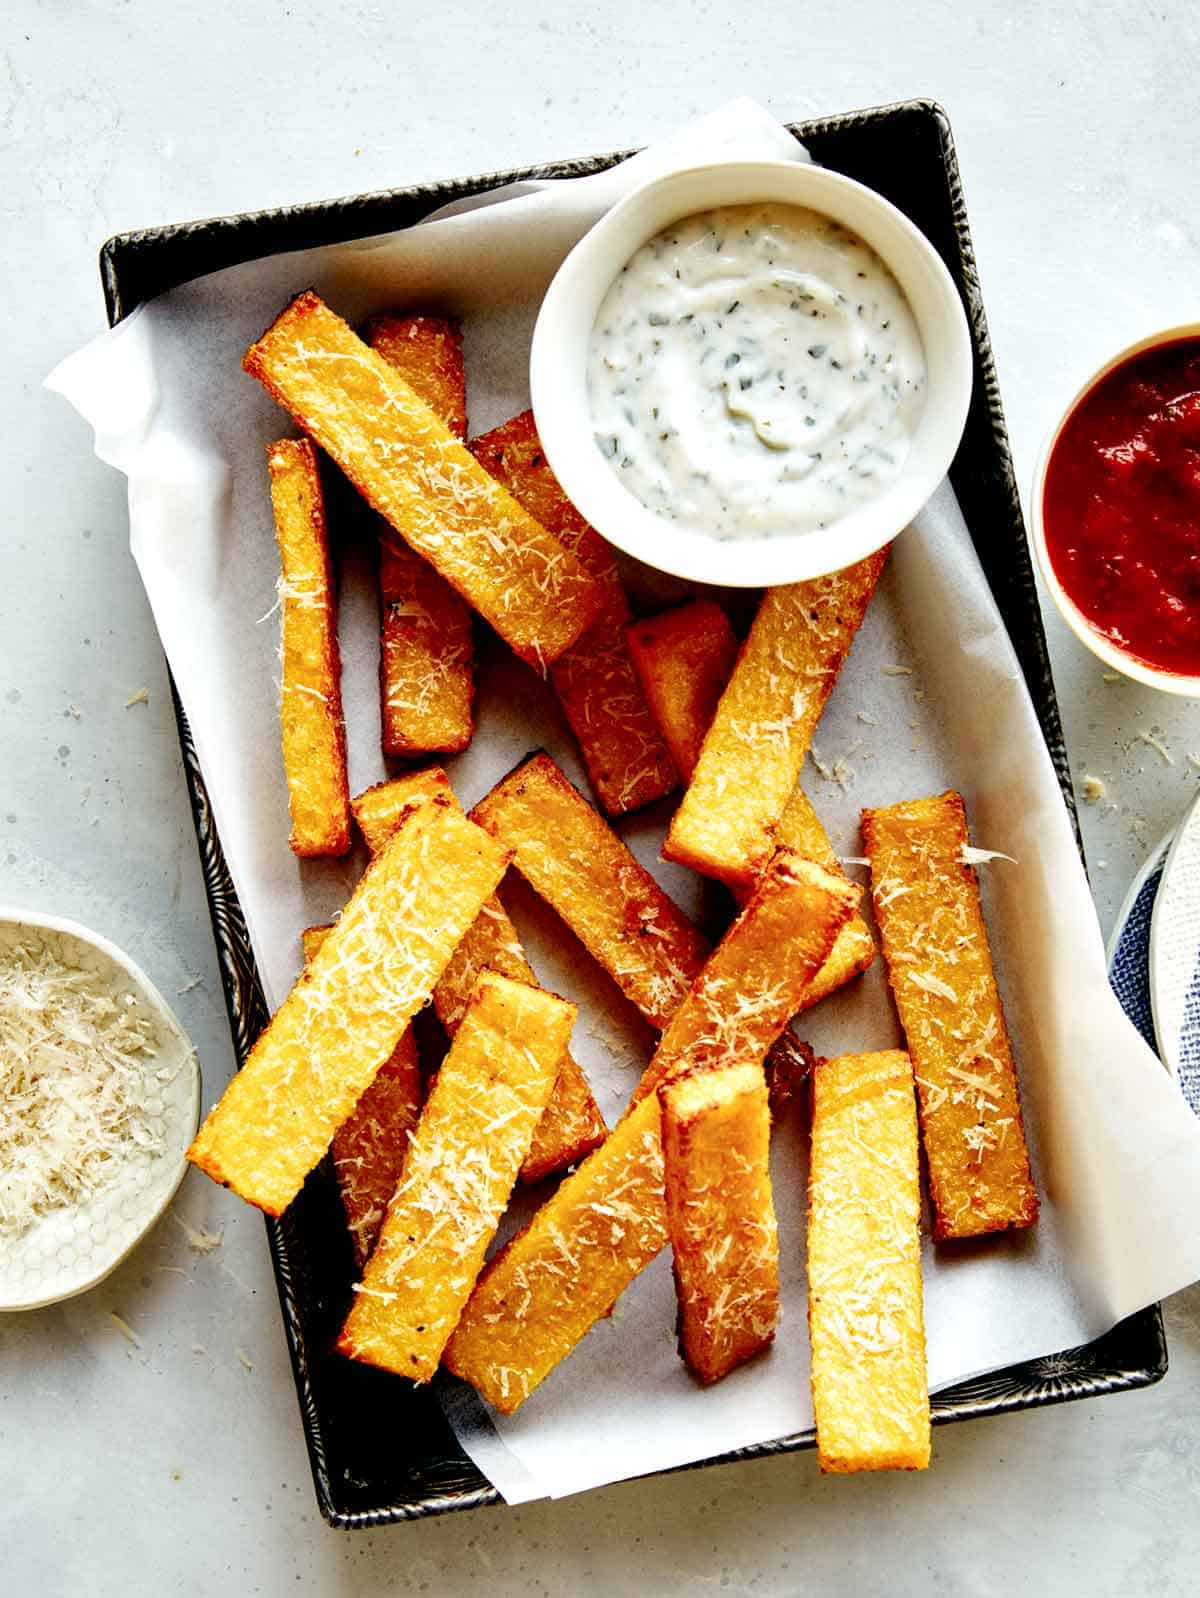 Polenta fries in a basket with dipping sauces next to it.